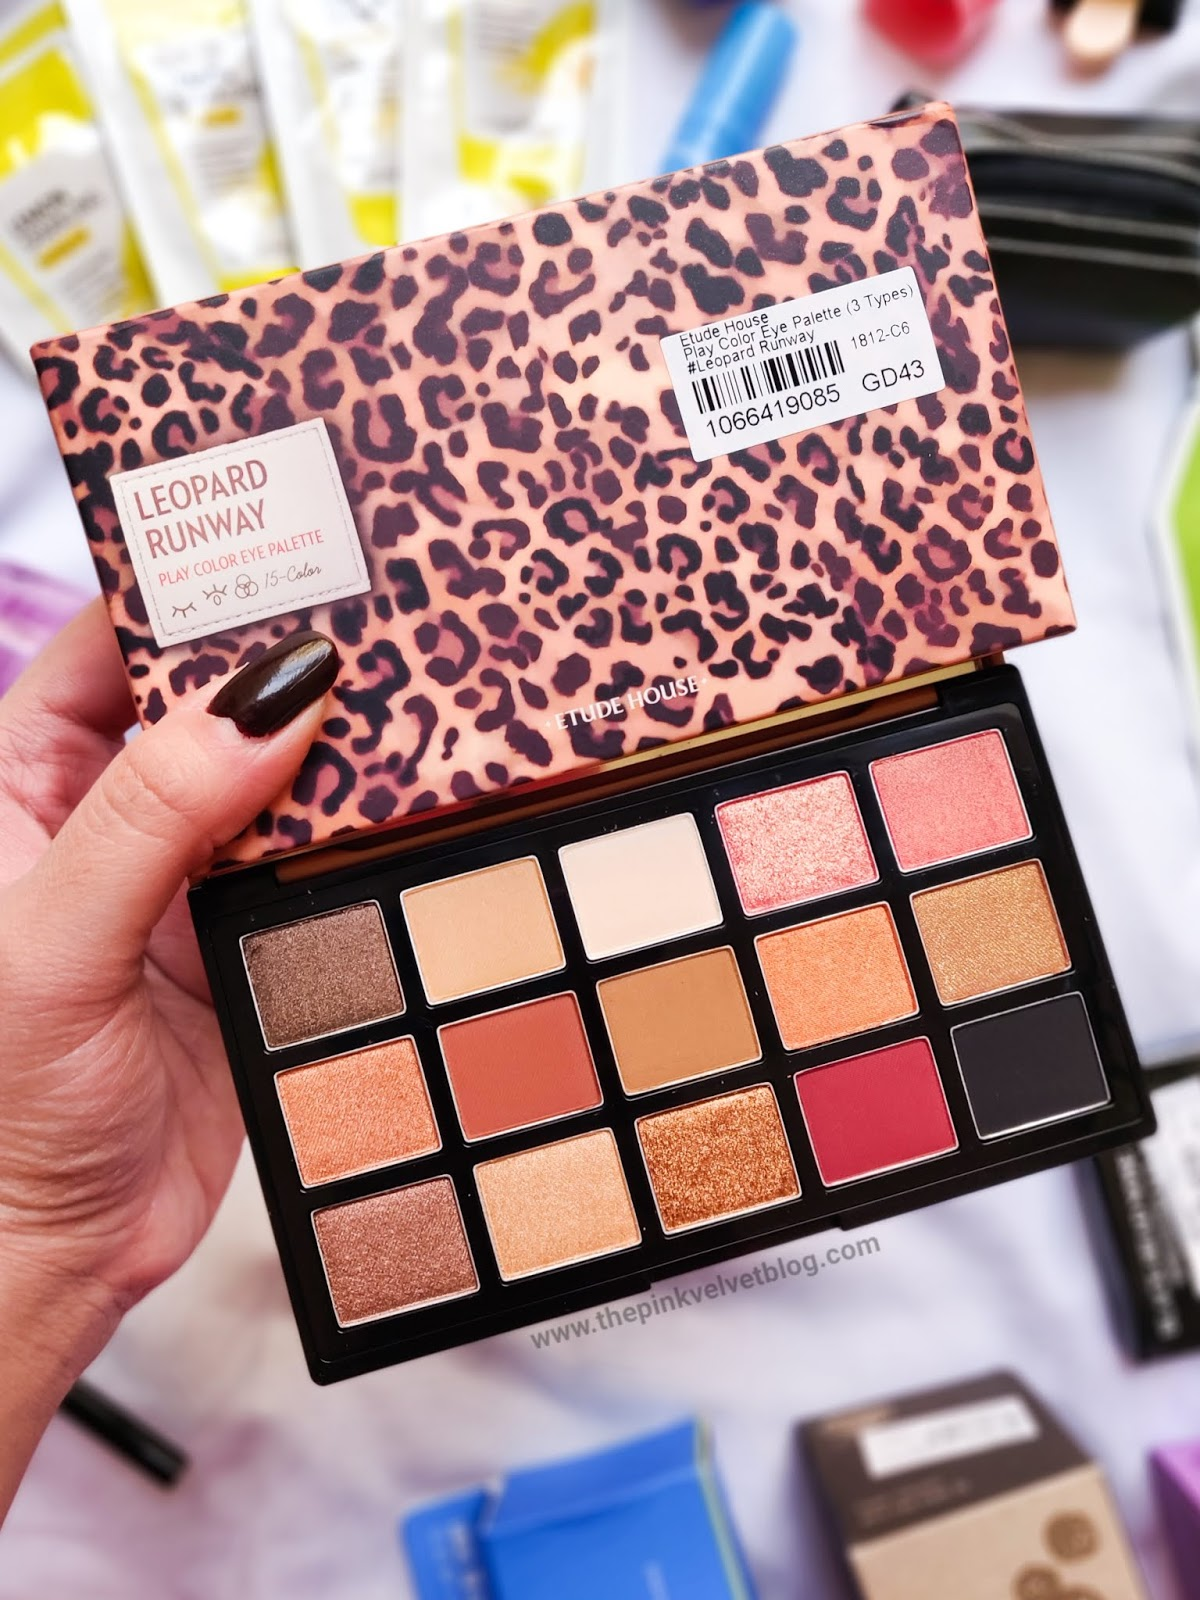 YesStyle Shopping Haul and Experience | YesStyle Shopping Haul and Experience | Korean Beauty Cosmetics from YesStyle - Etude House Leopard Palette